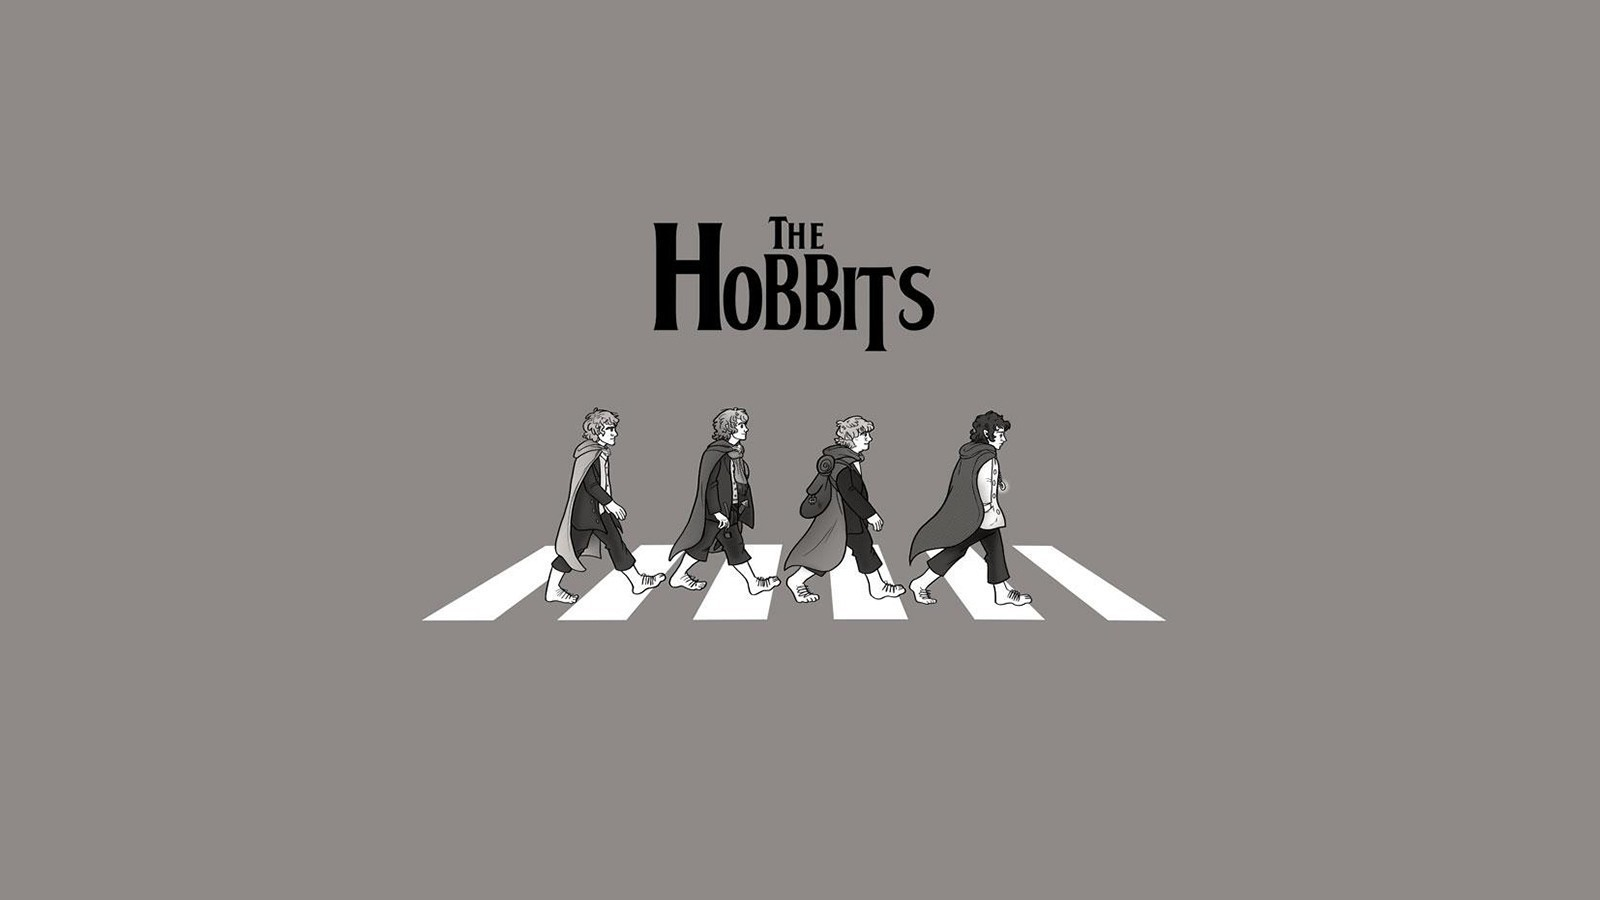 Hobbits on a pedestrian crossing wallpapers and images